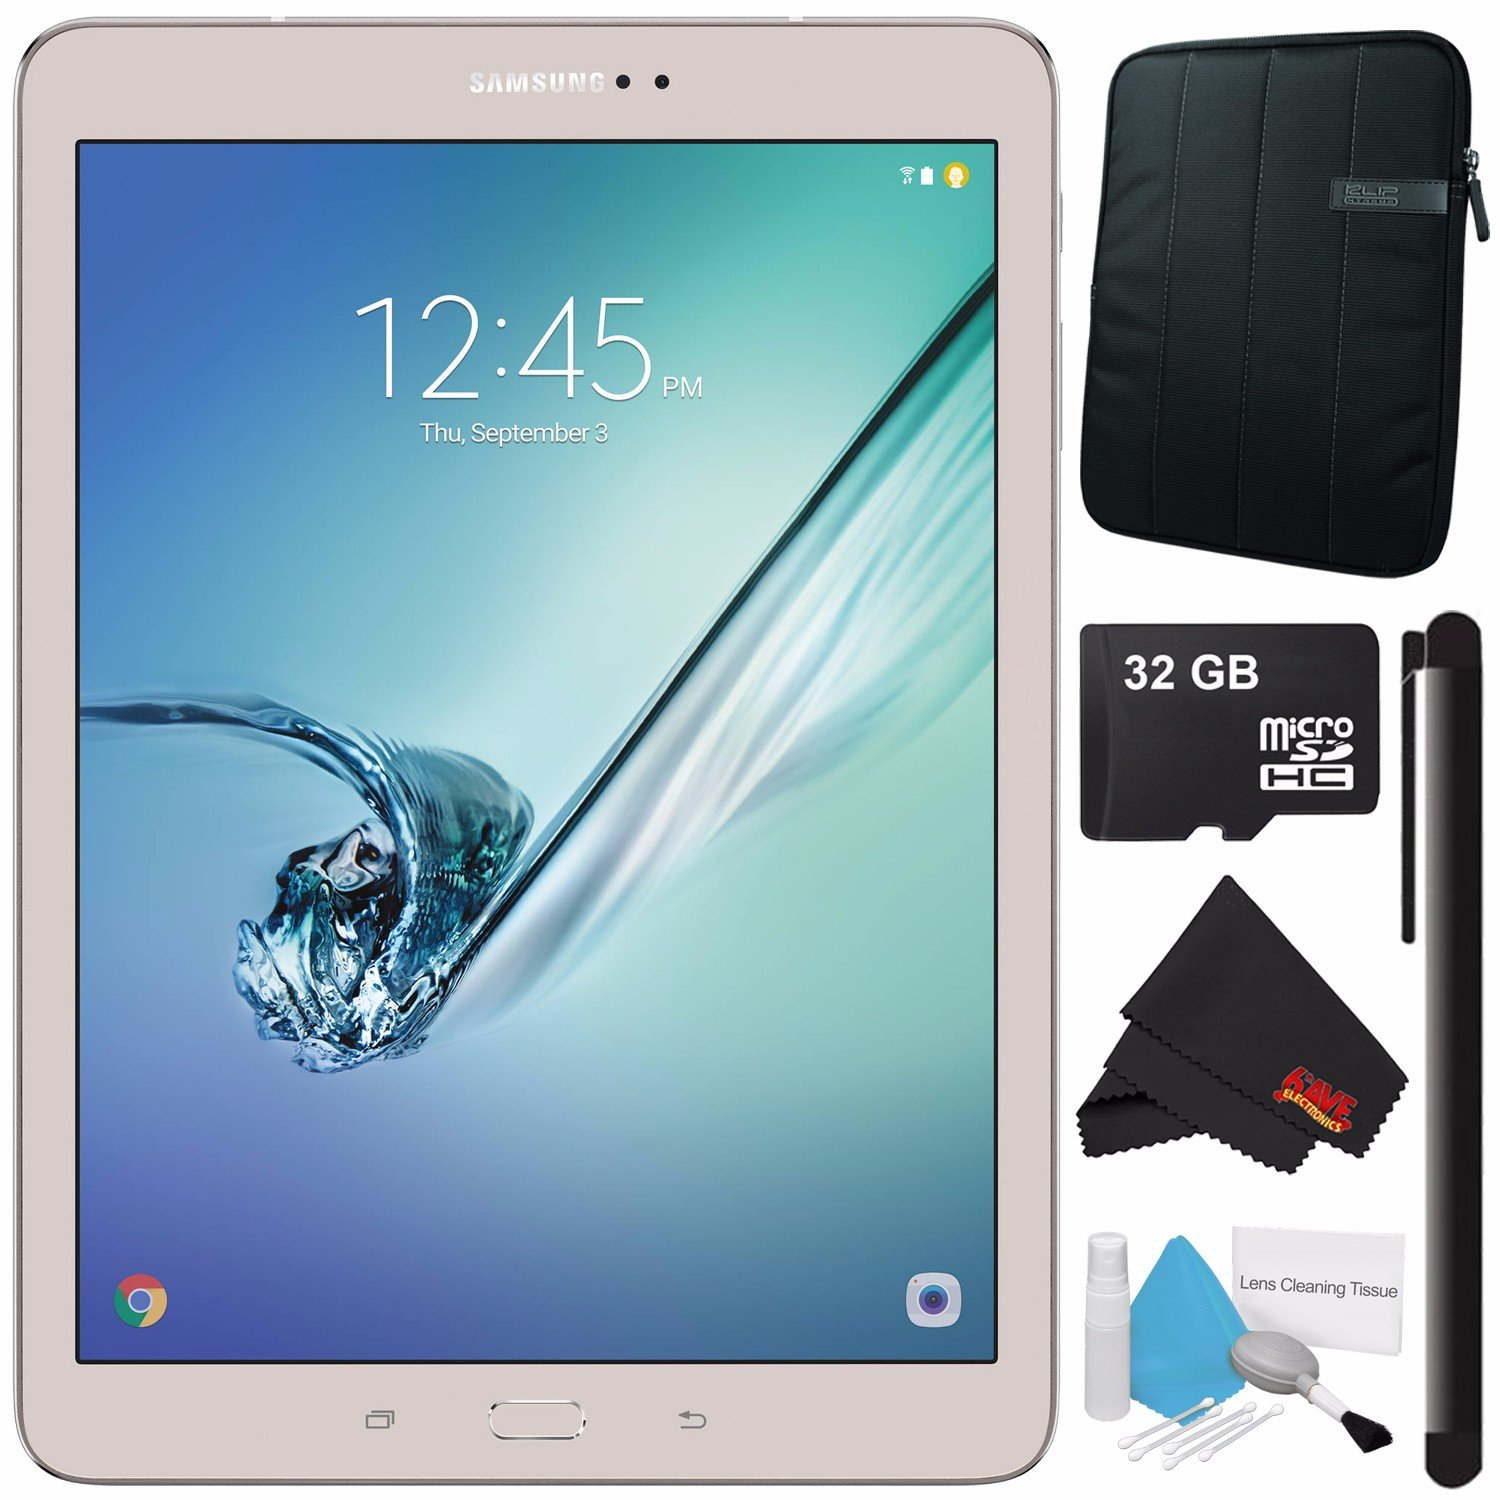 Samsung 32GB Galaxy Tab S2 9.7'' Wi-Fi Tablet (Gold) SM-T813NZDEXAR + Universal Stylus for Tablets + Tablet Neoprene Sleeve 10.1'' Case (Black) + 32GB Class 10 Micro SD Memory Card Bundle by Samsung